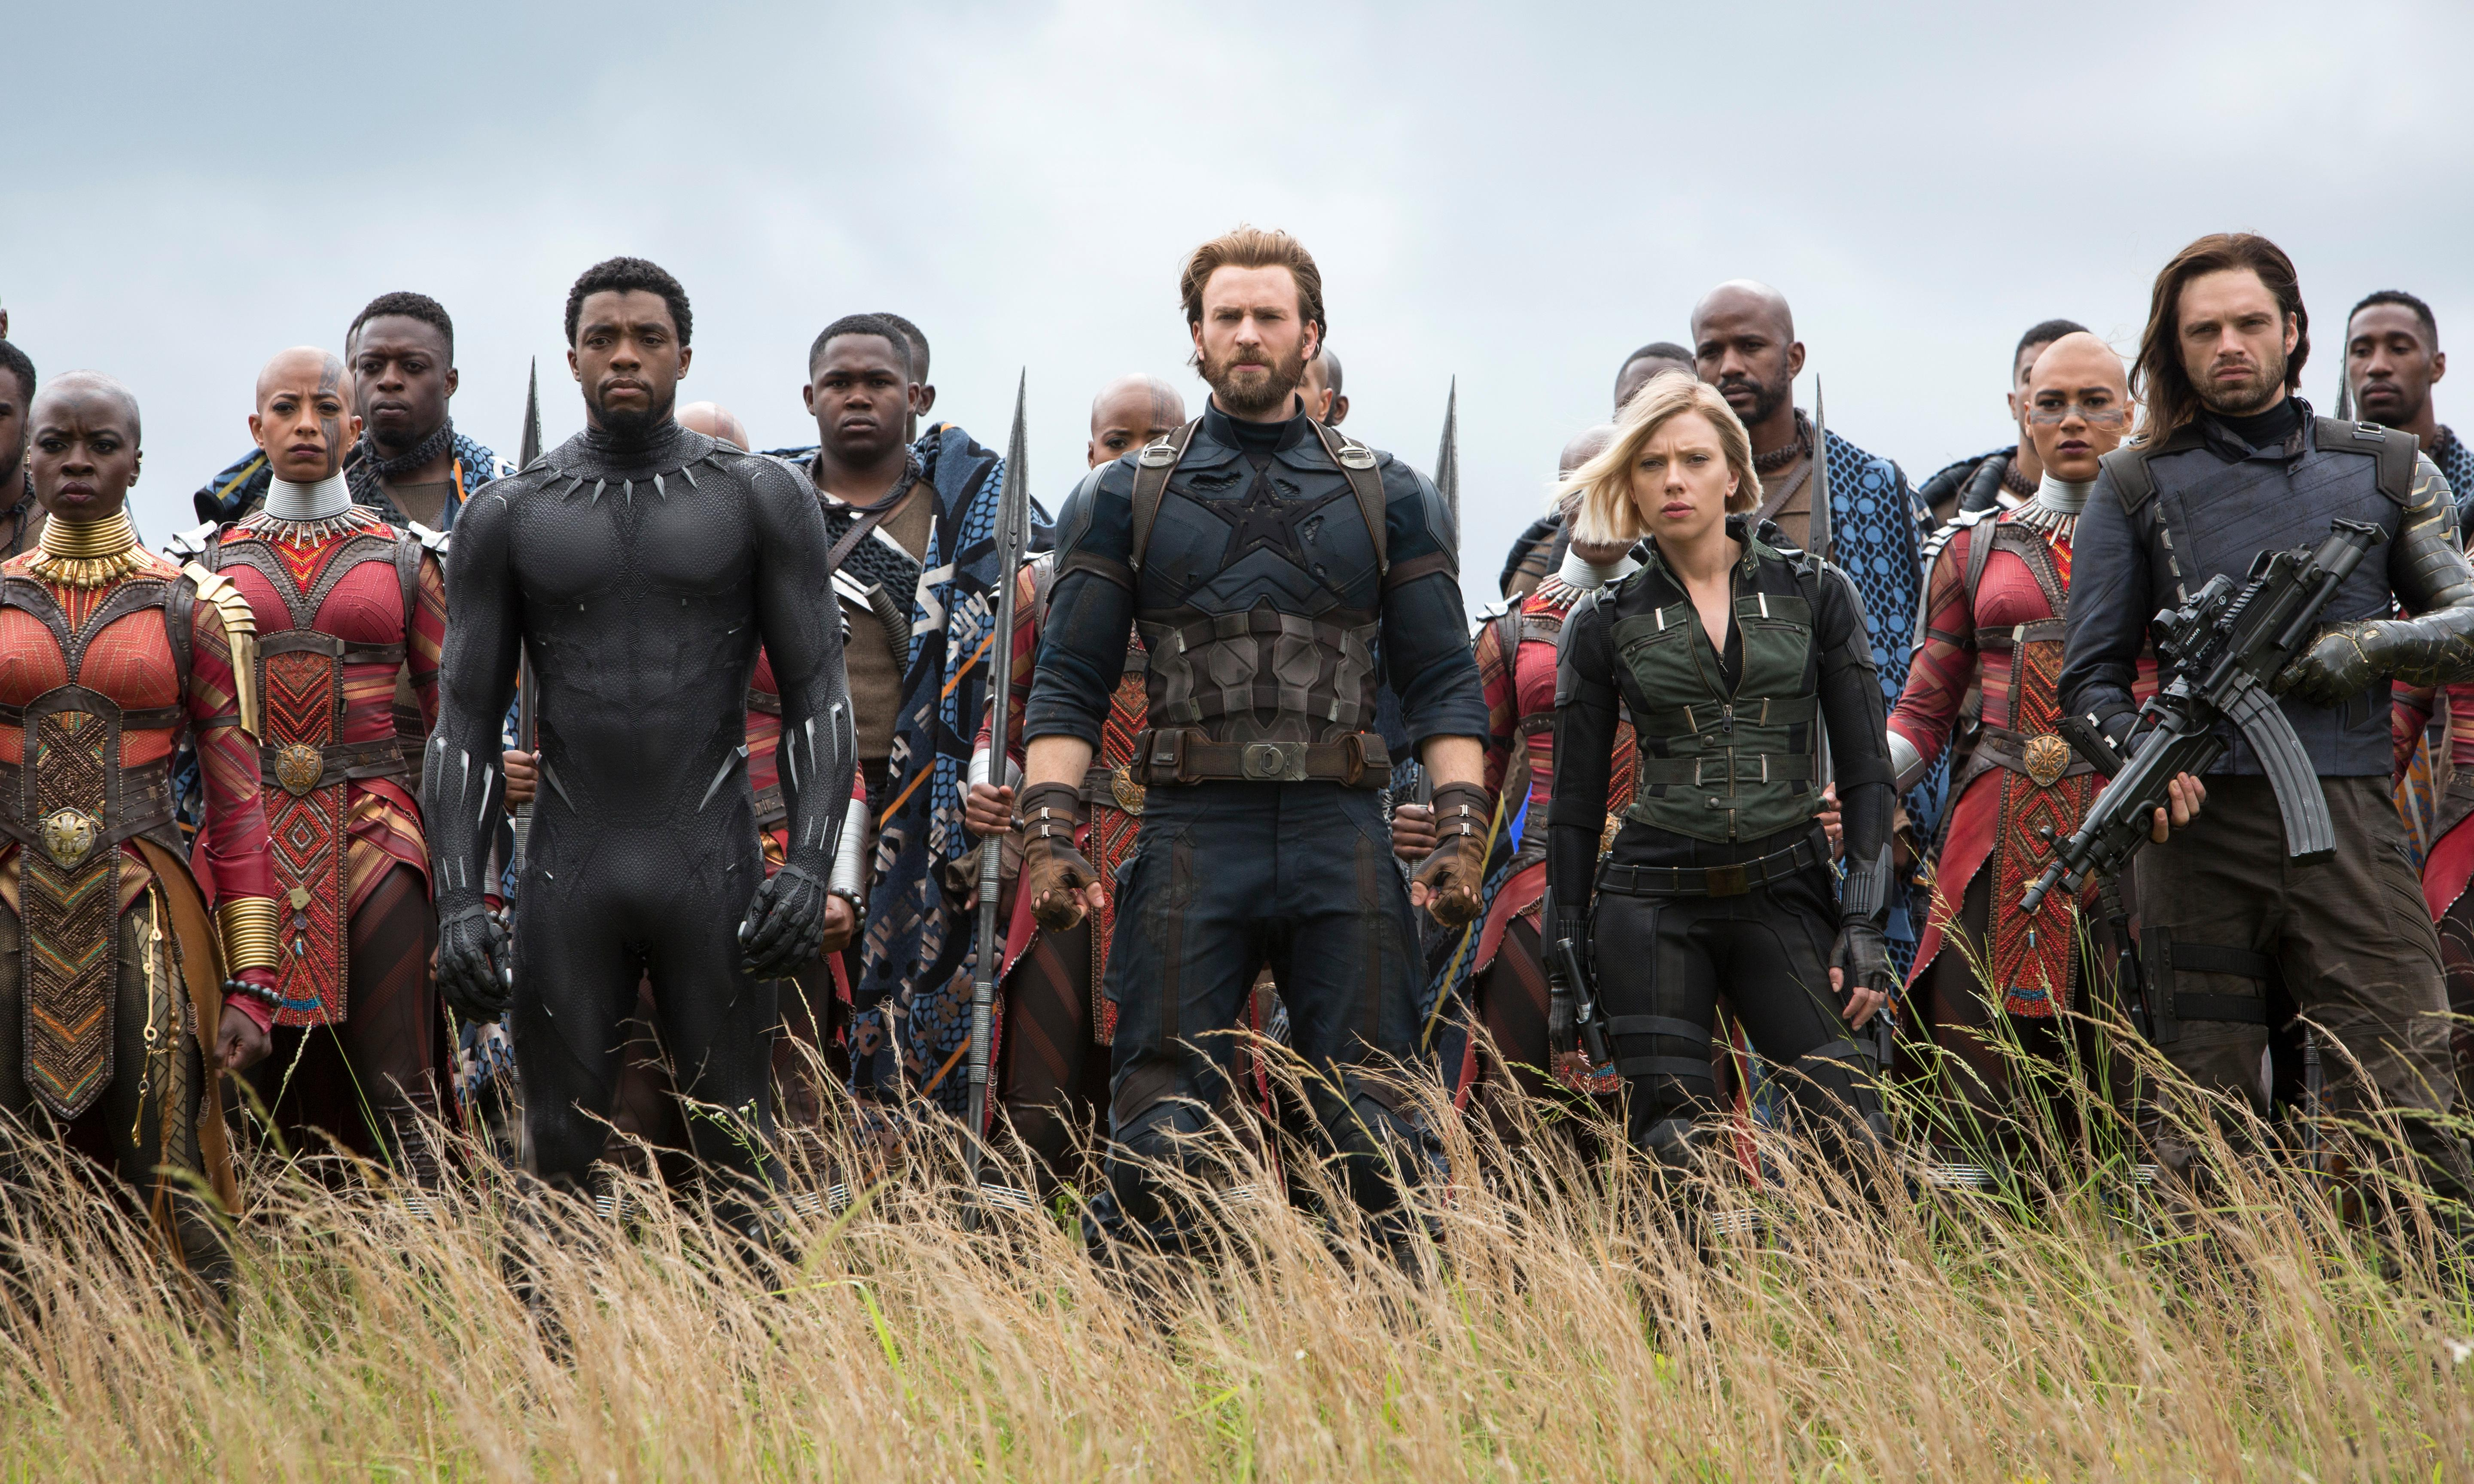 Avengers: Endgame is the final gambit in Marvel's triumph of diversity